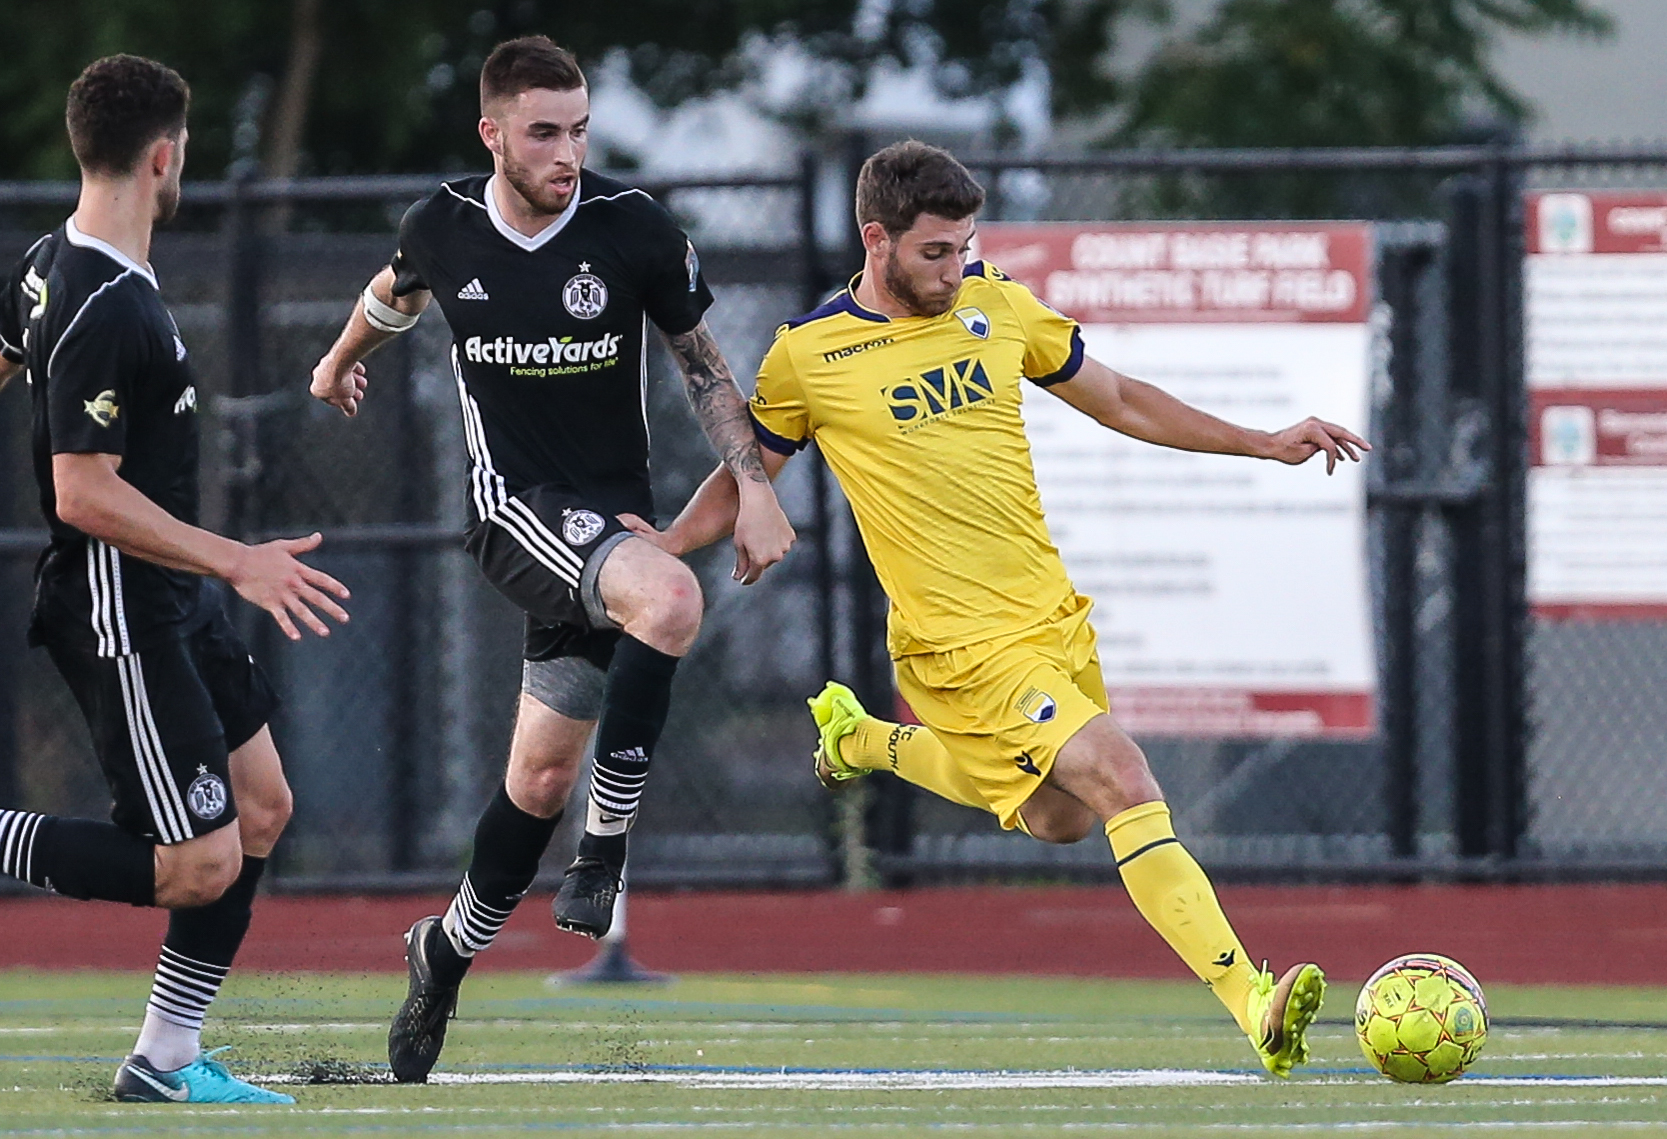 Own Gaynor with a clearance in the essential win against West Chester United SC